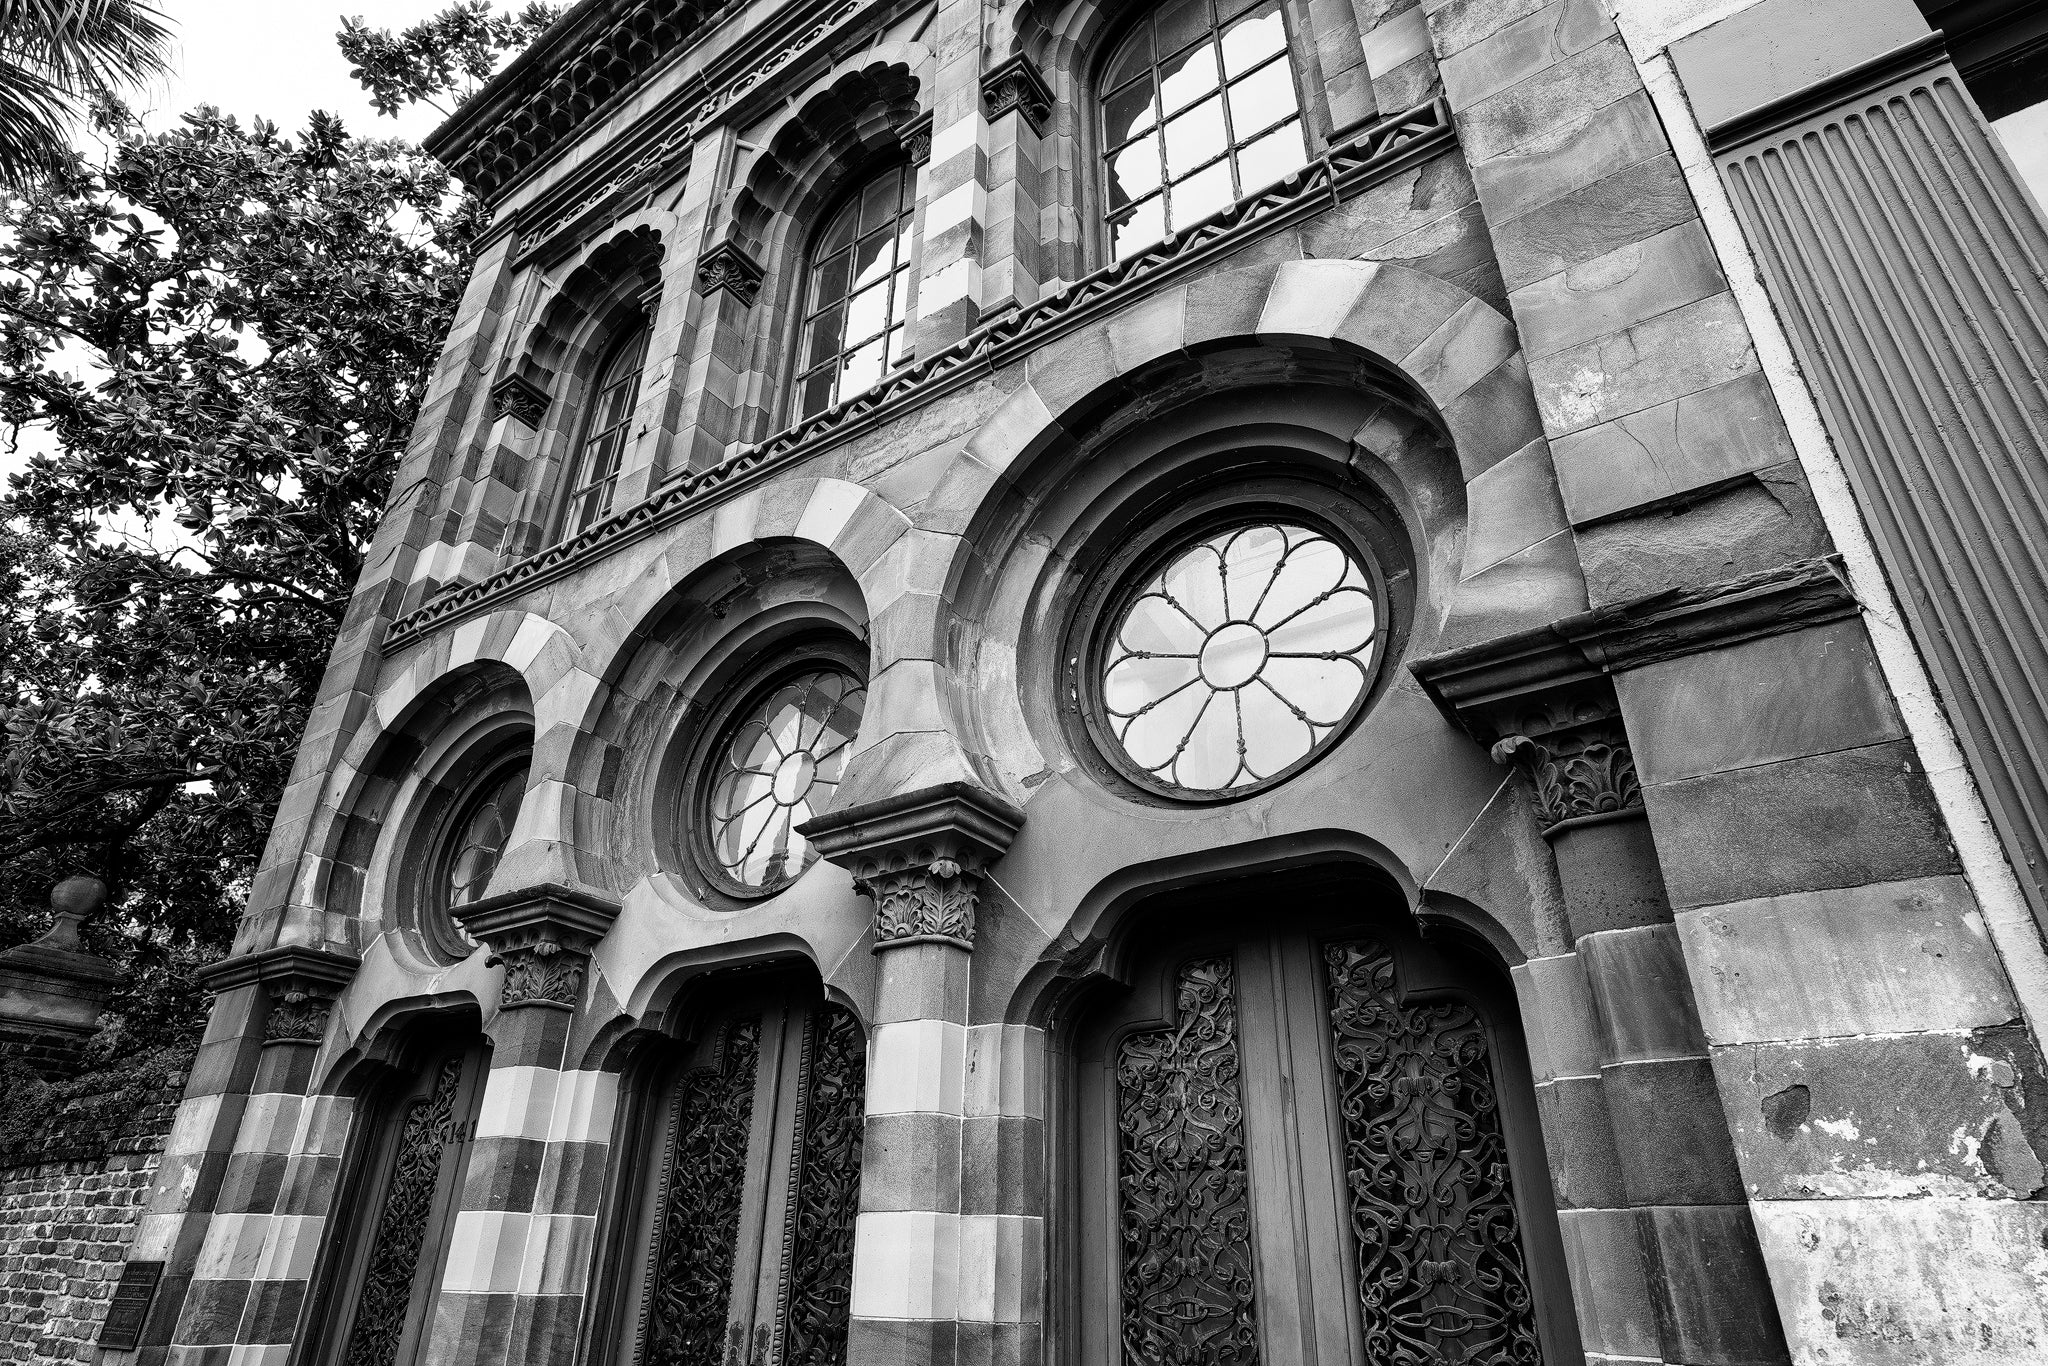 Front of the Old Farmers and Exchange Bank in Charleston - Black and White Photograph by Keith Dotson. Buy a print here.